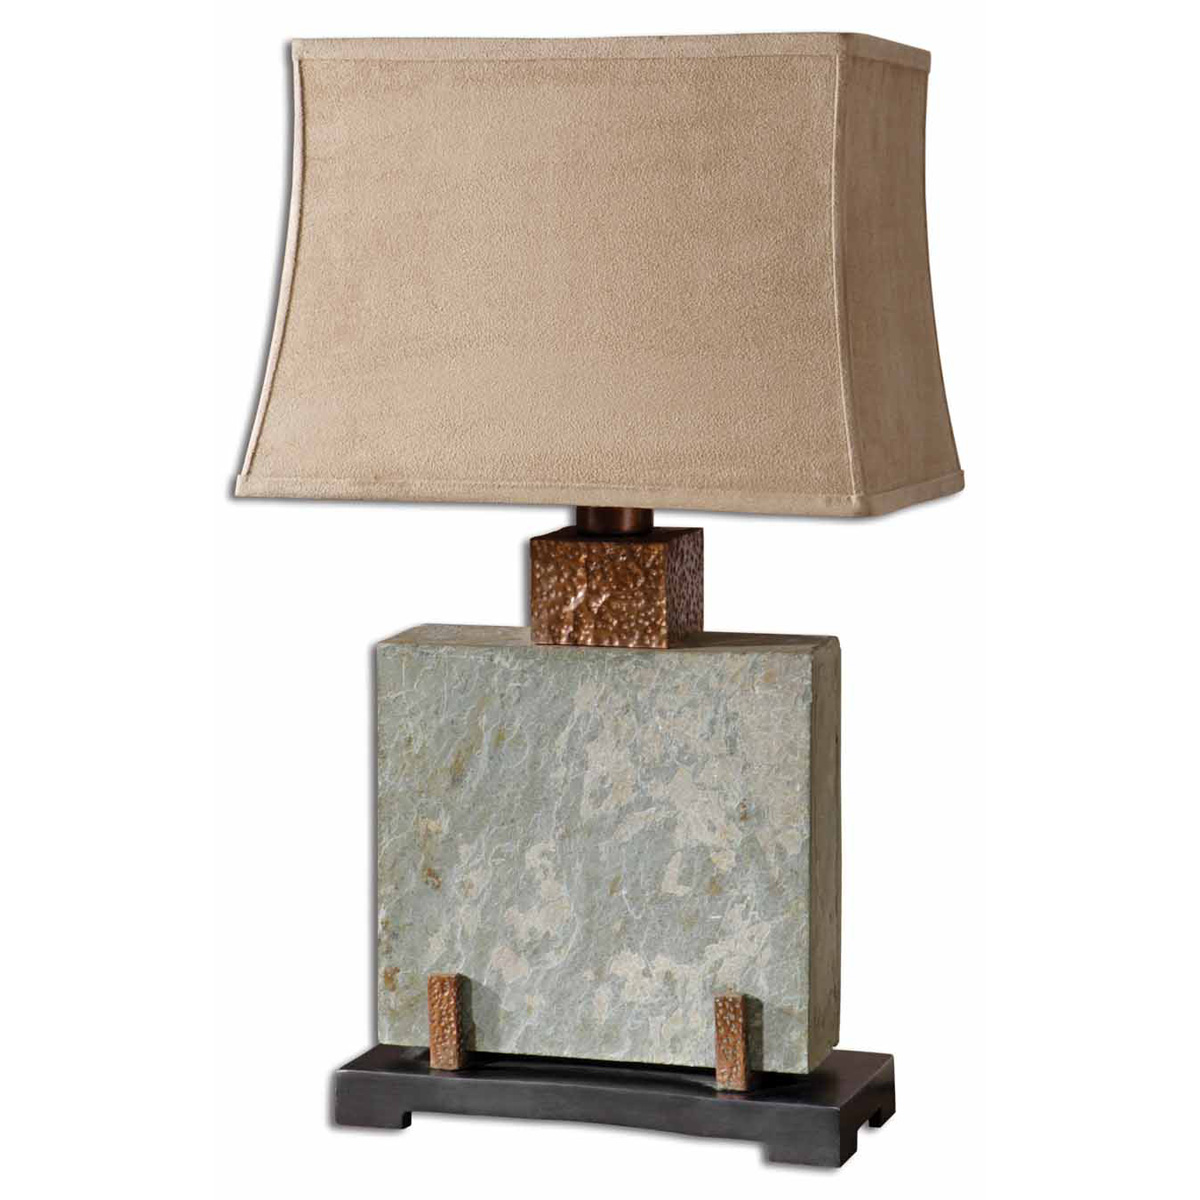 Copper Valley Square Table Lamp